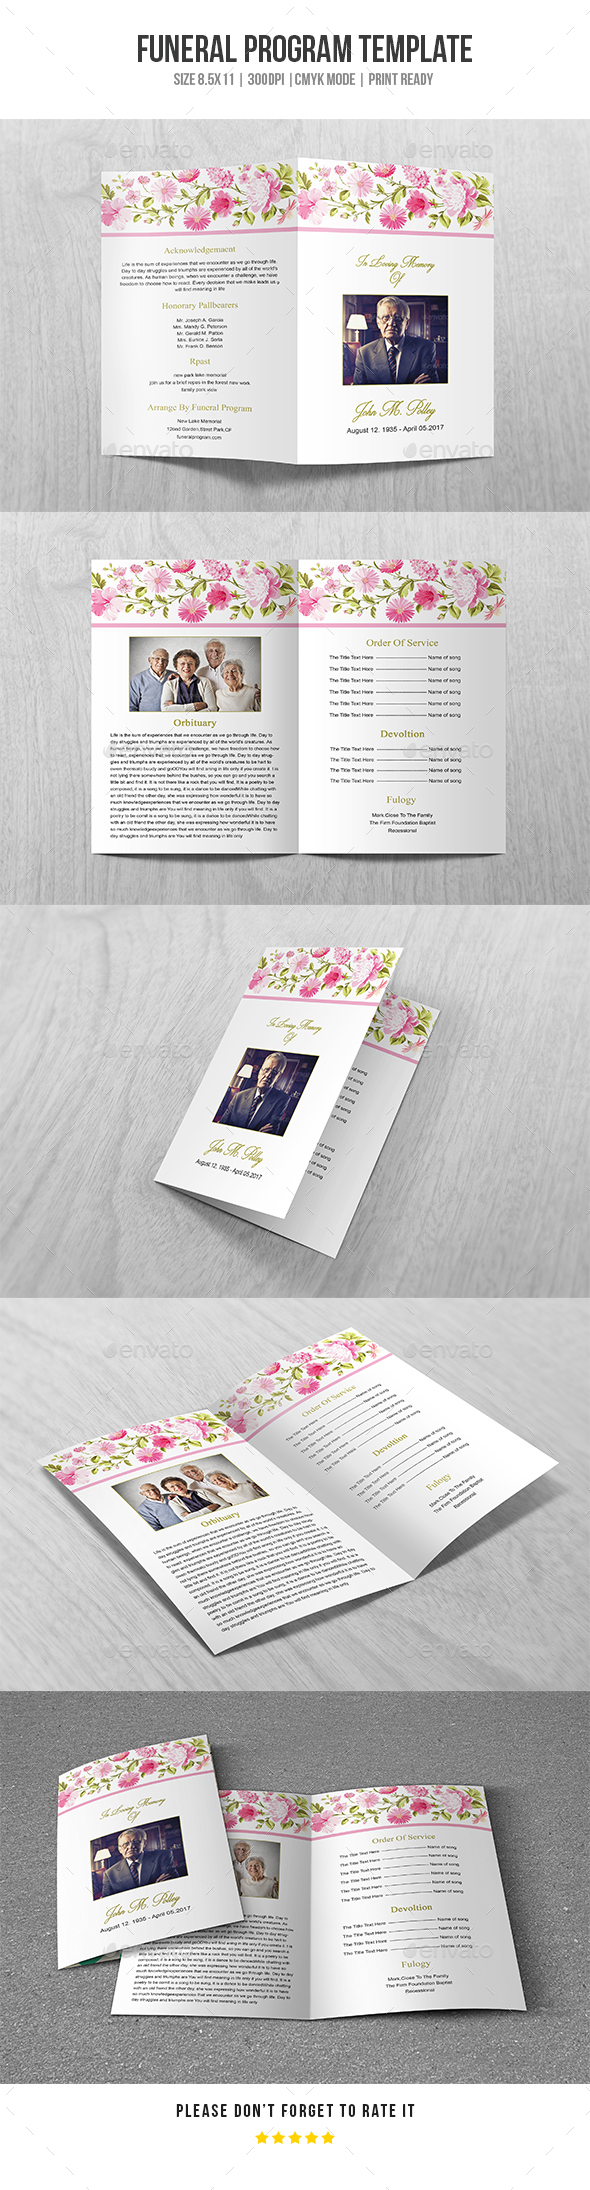 GraphicRiver Funeral Program Template Vol 38 20442182